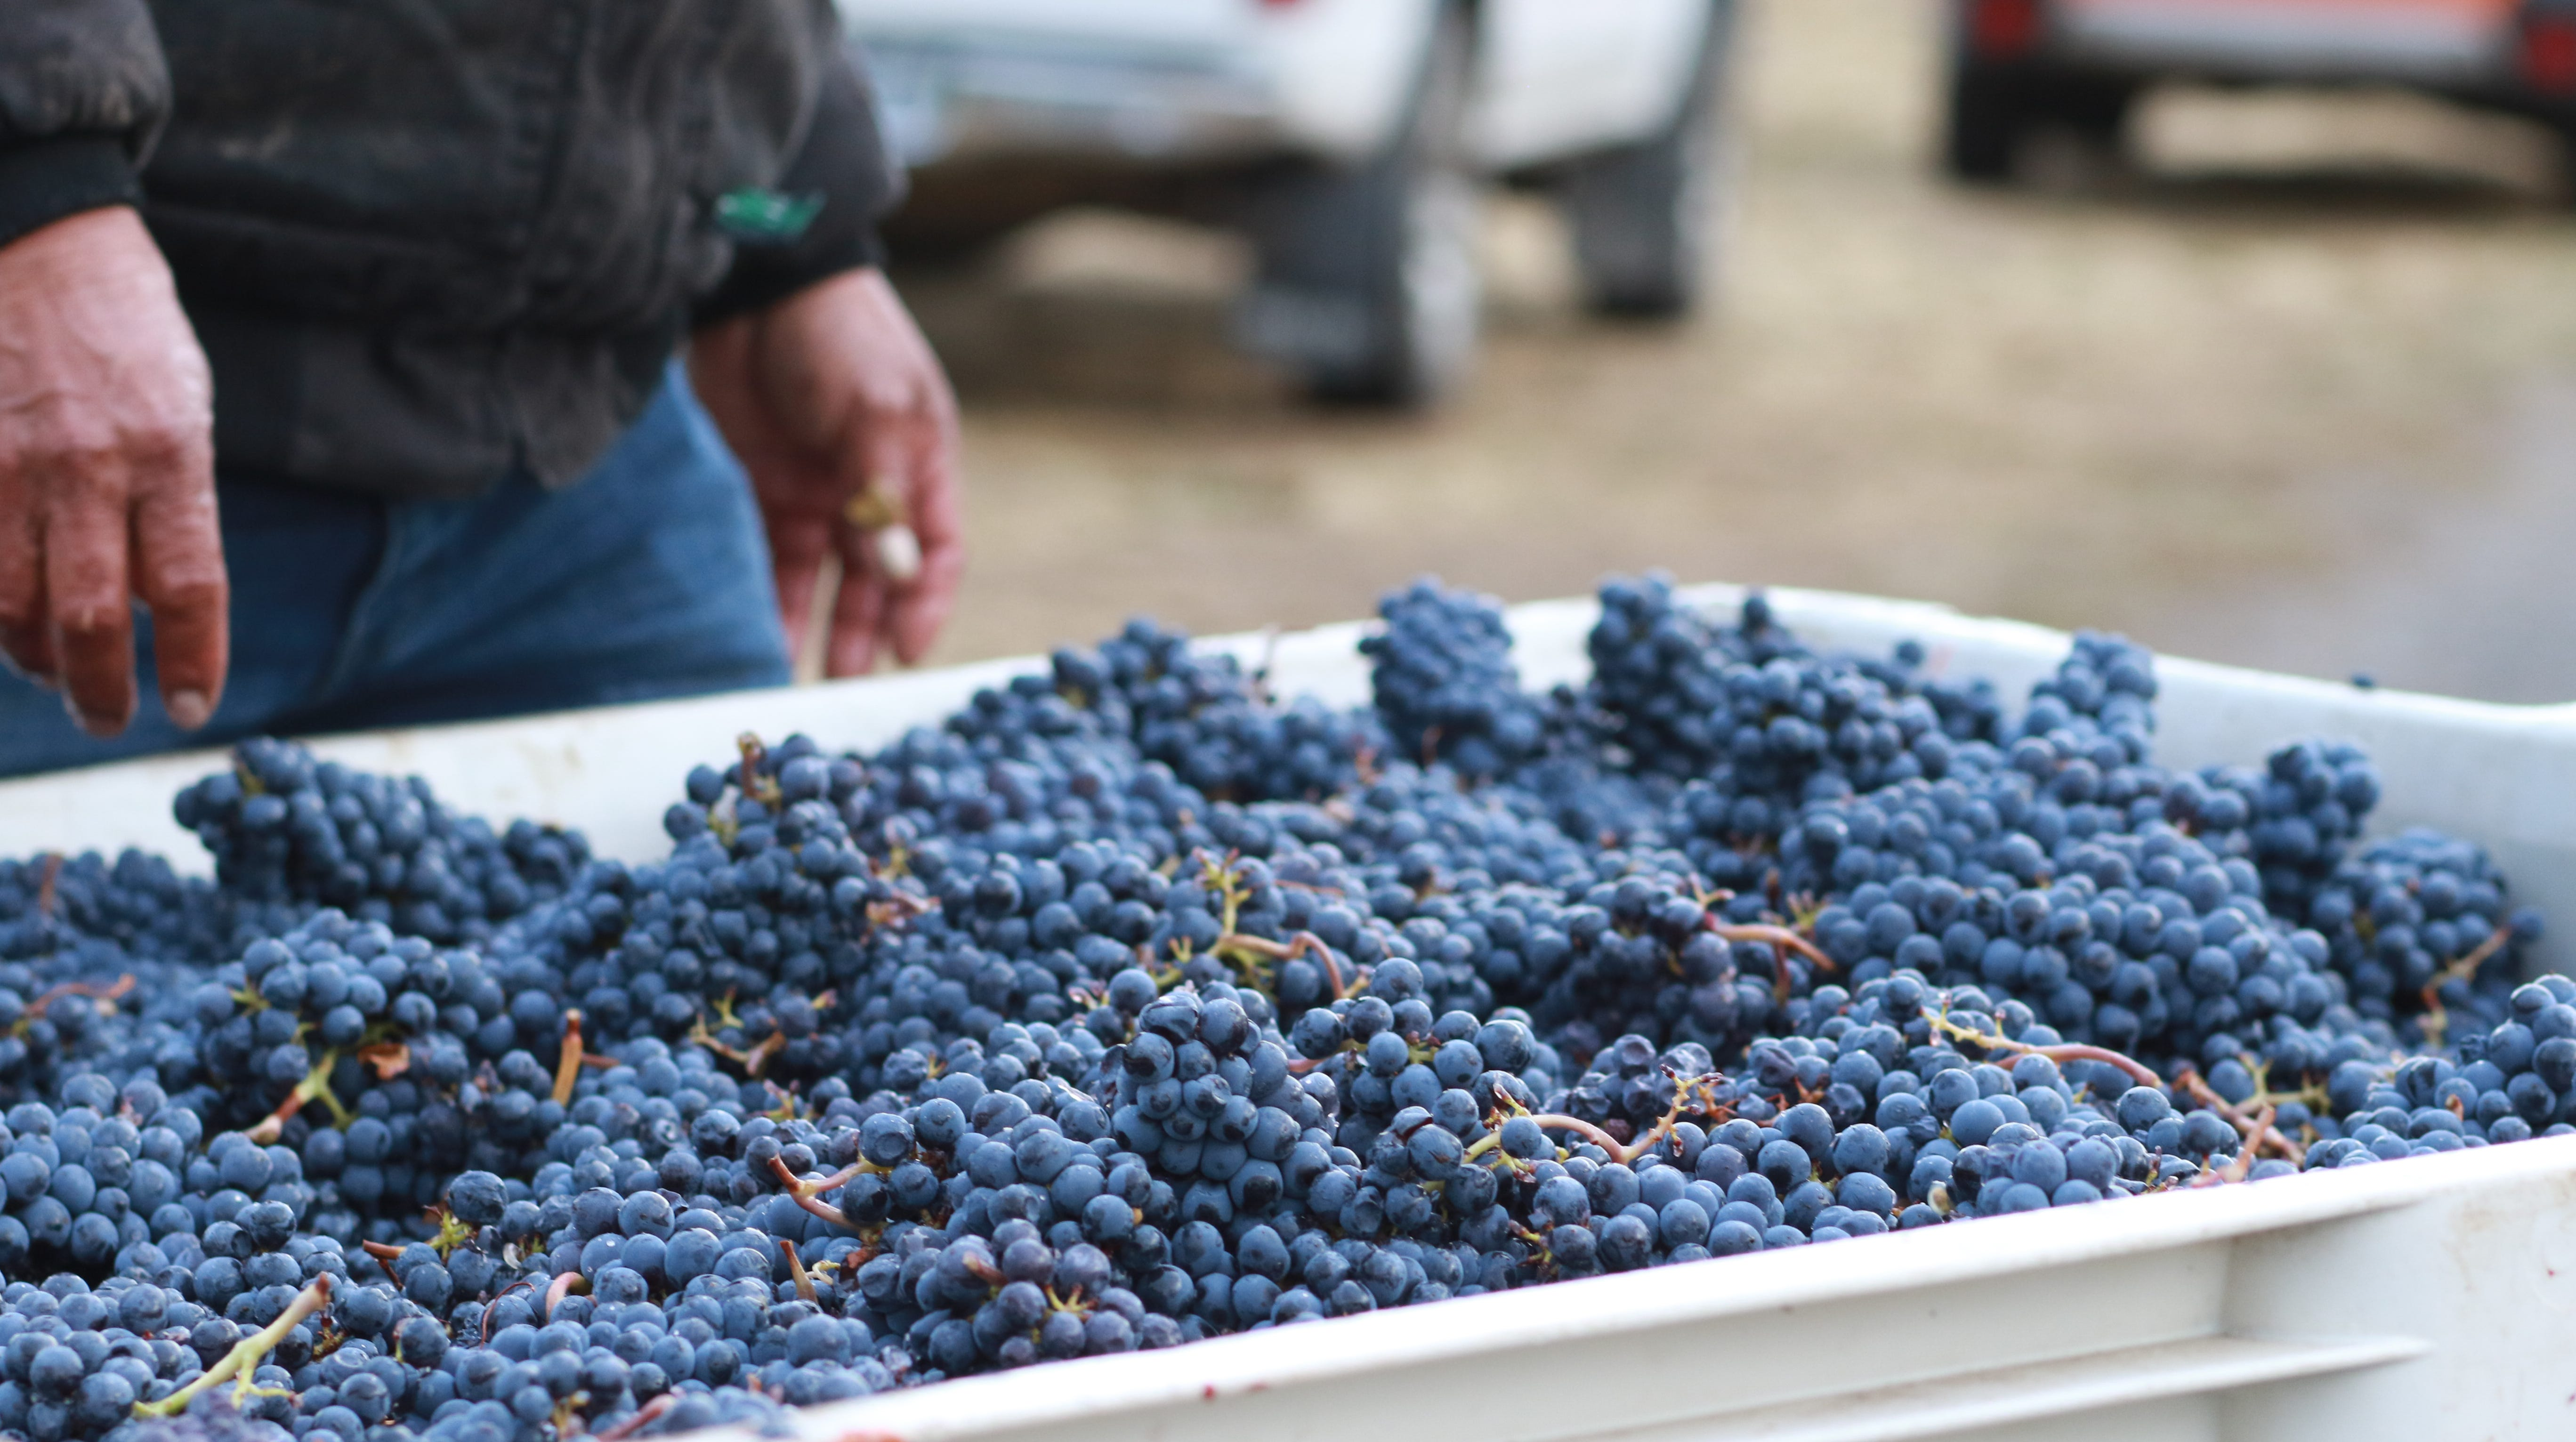 One bin of the 2,000 tons of Southern Oregon fruit rejected by a California winery  allegedly for smoke taint. These pinot noir grapes will be shipped north to make a bottling called Solidarity Vintage.